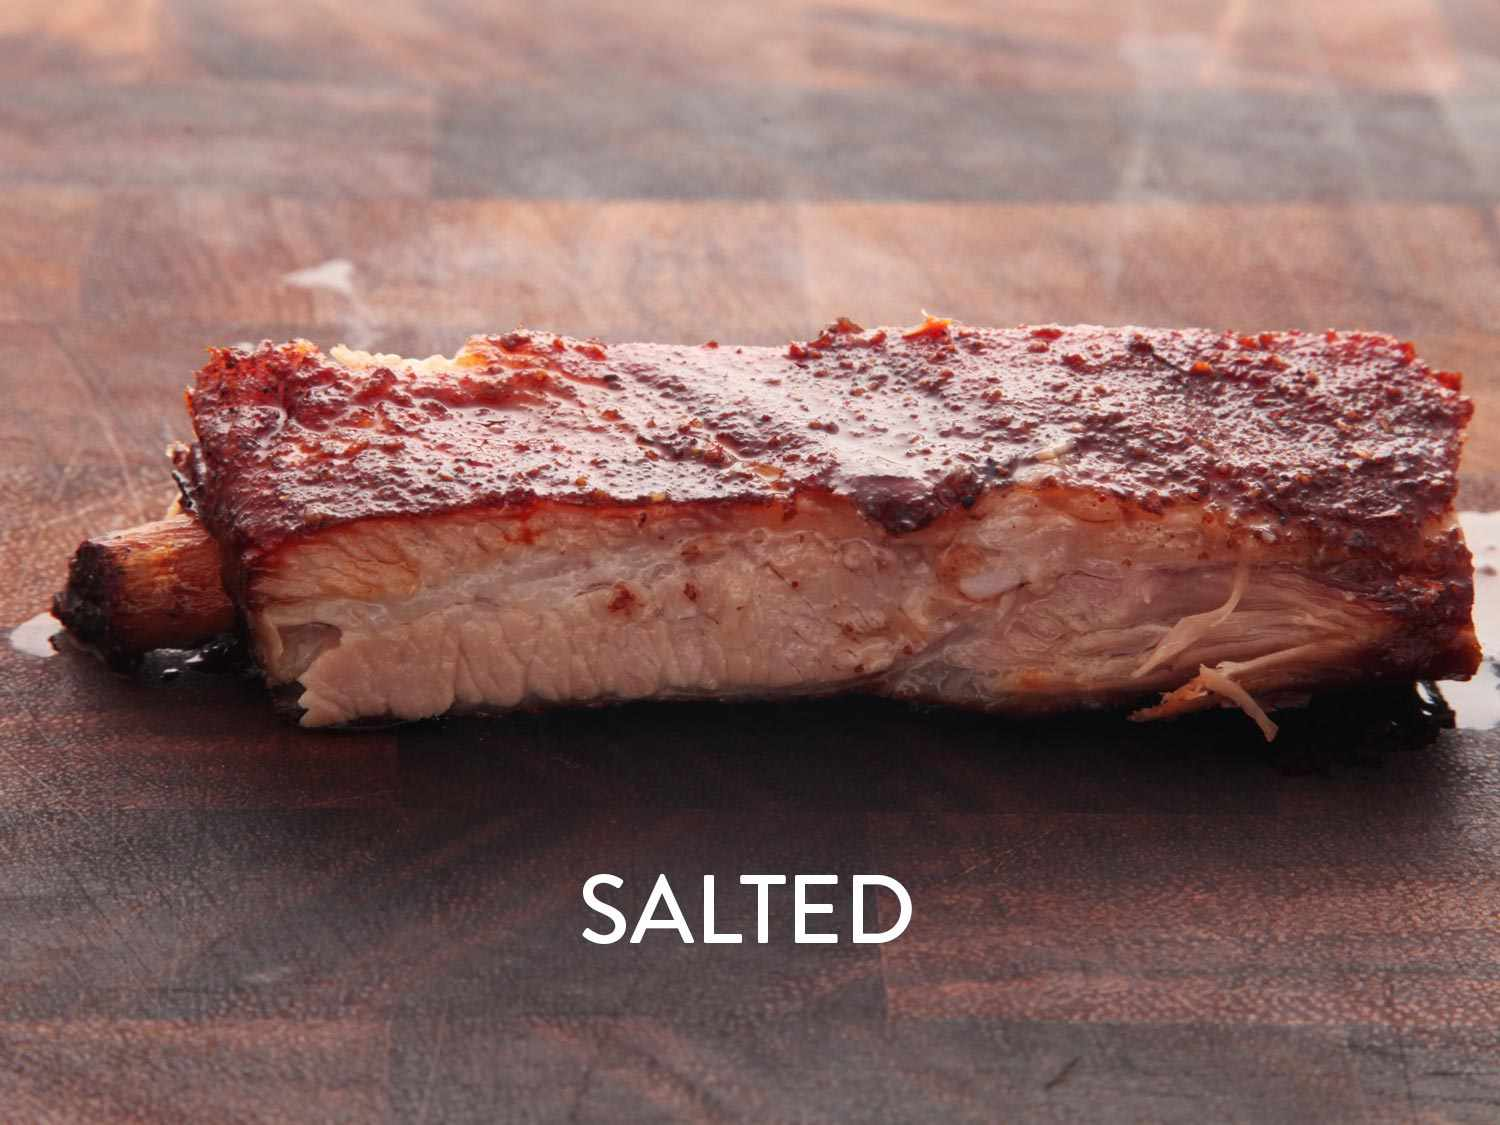 A photo of a salted pork rib cooked sous vide